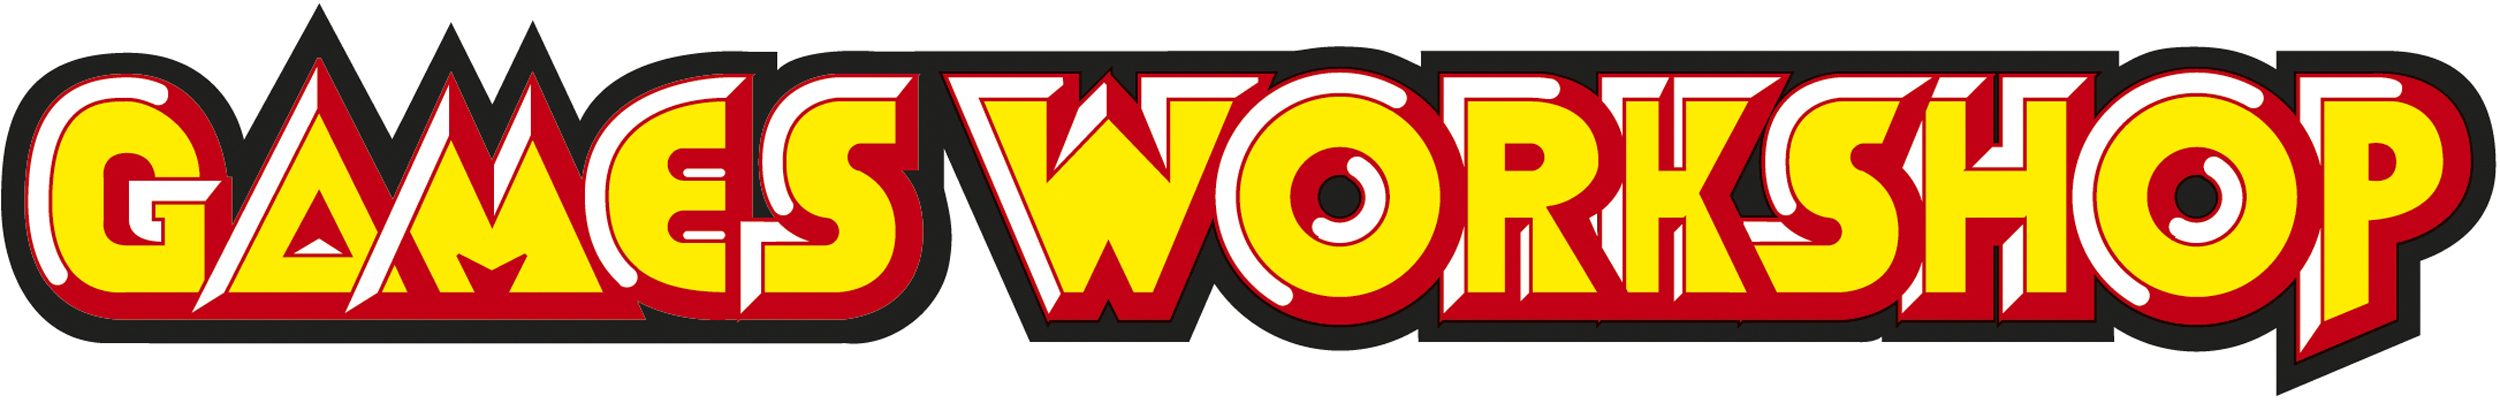 Games Workshop 1line Logo 1